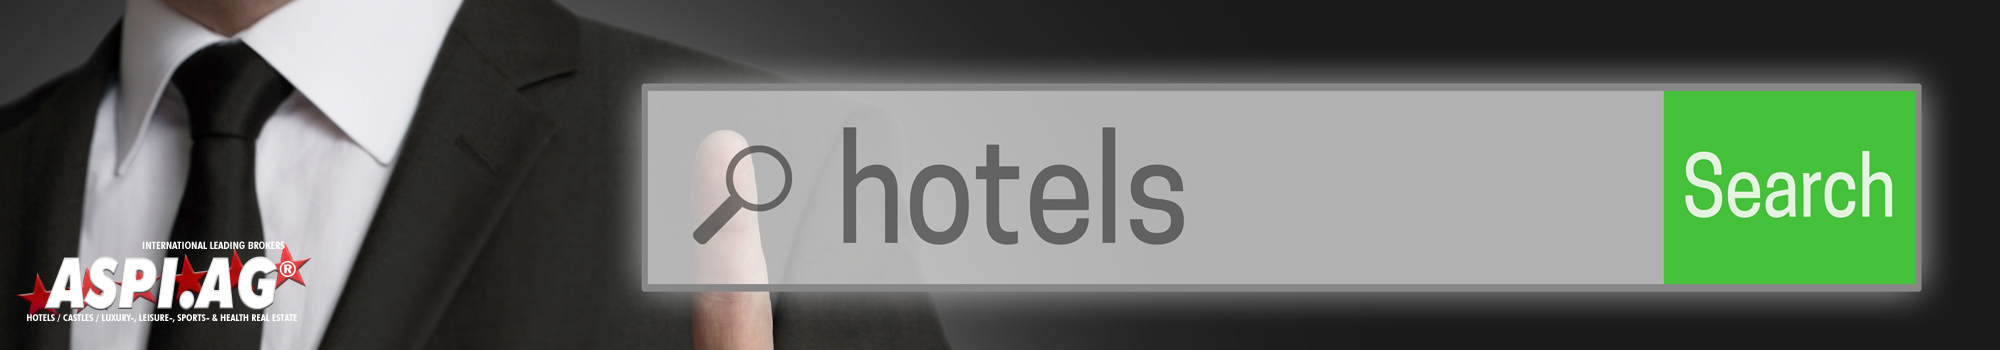 ASPI AG is looking for hotels, castles, motels for sale